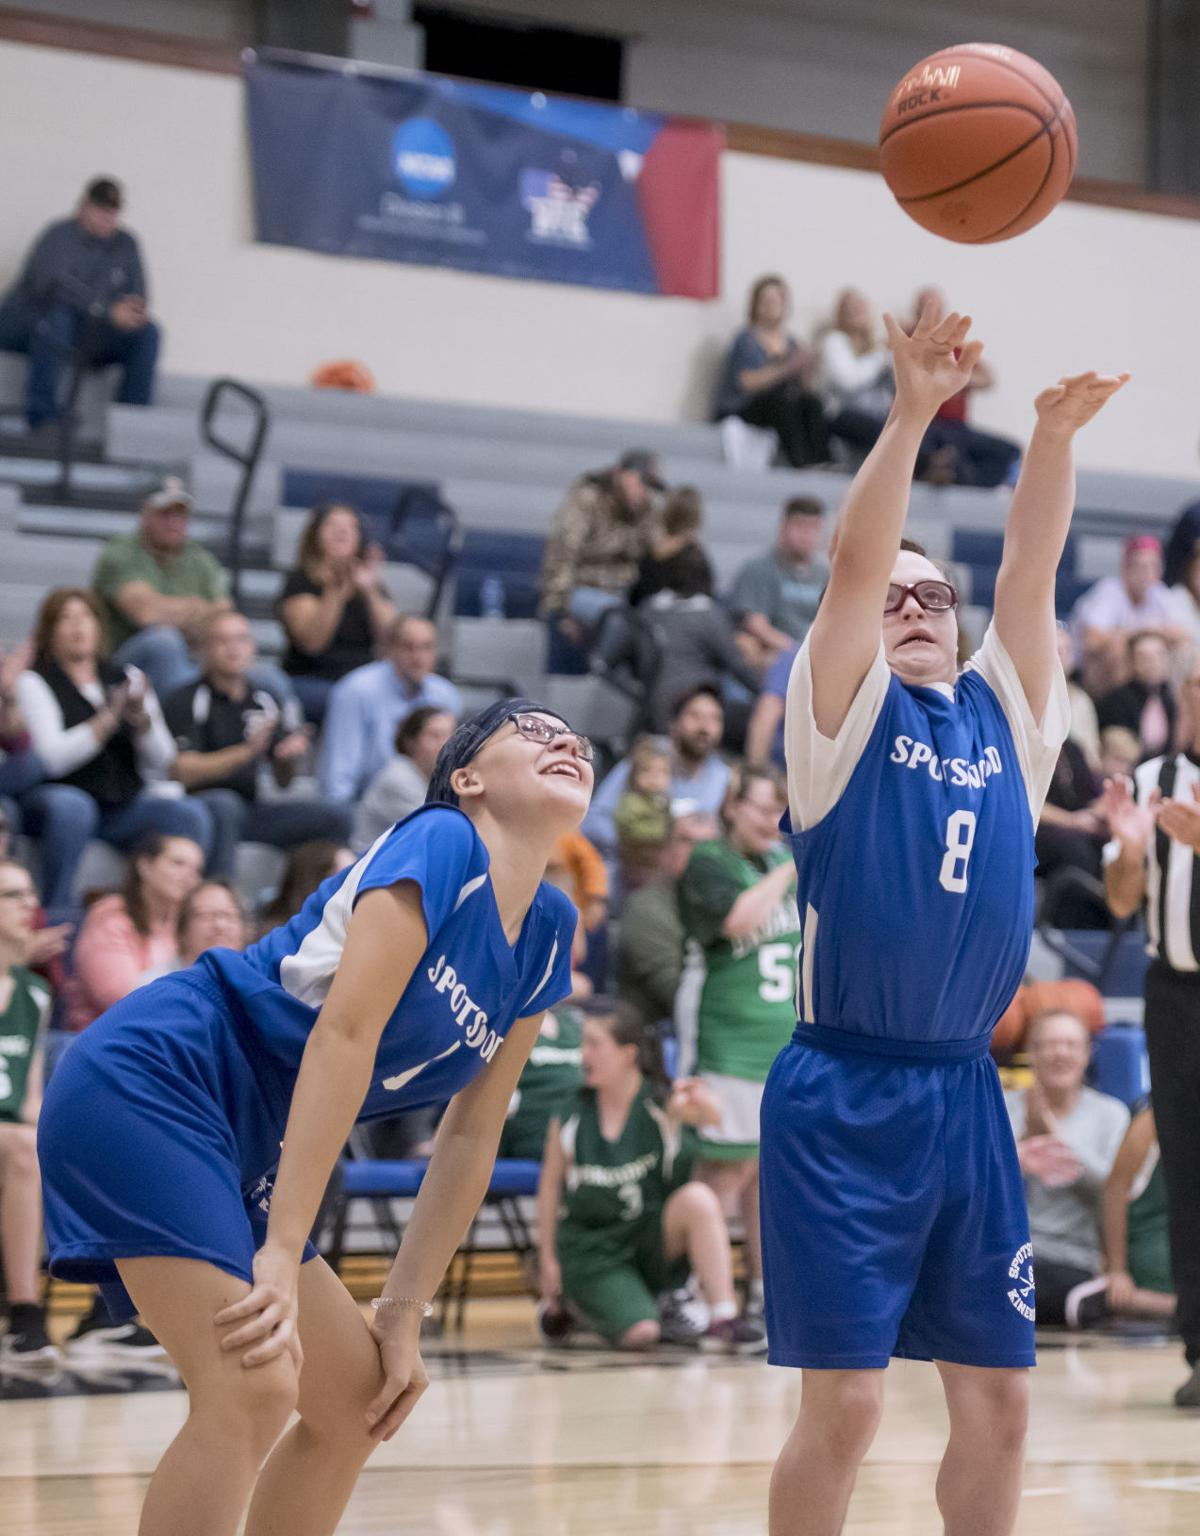 1015_dnr_Unified Basketball_10